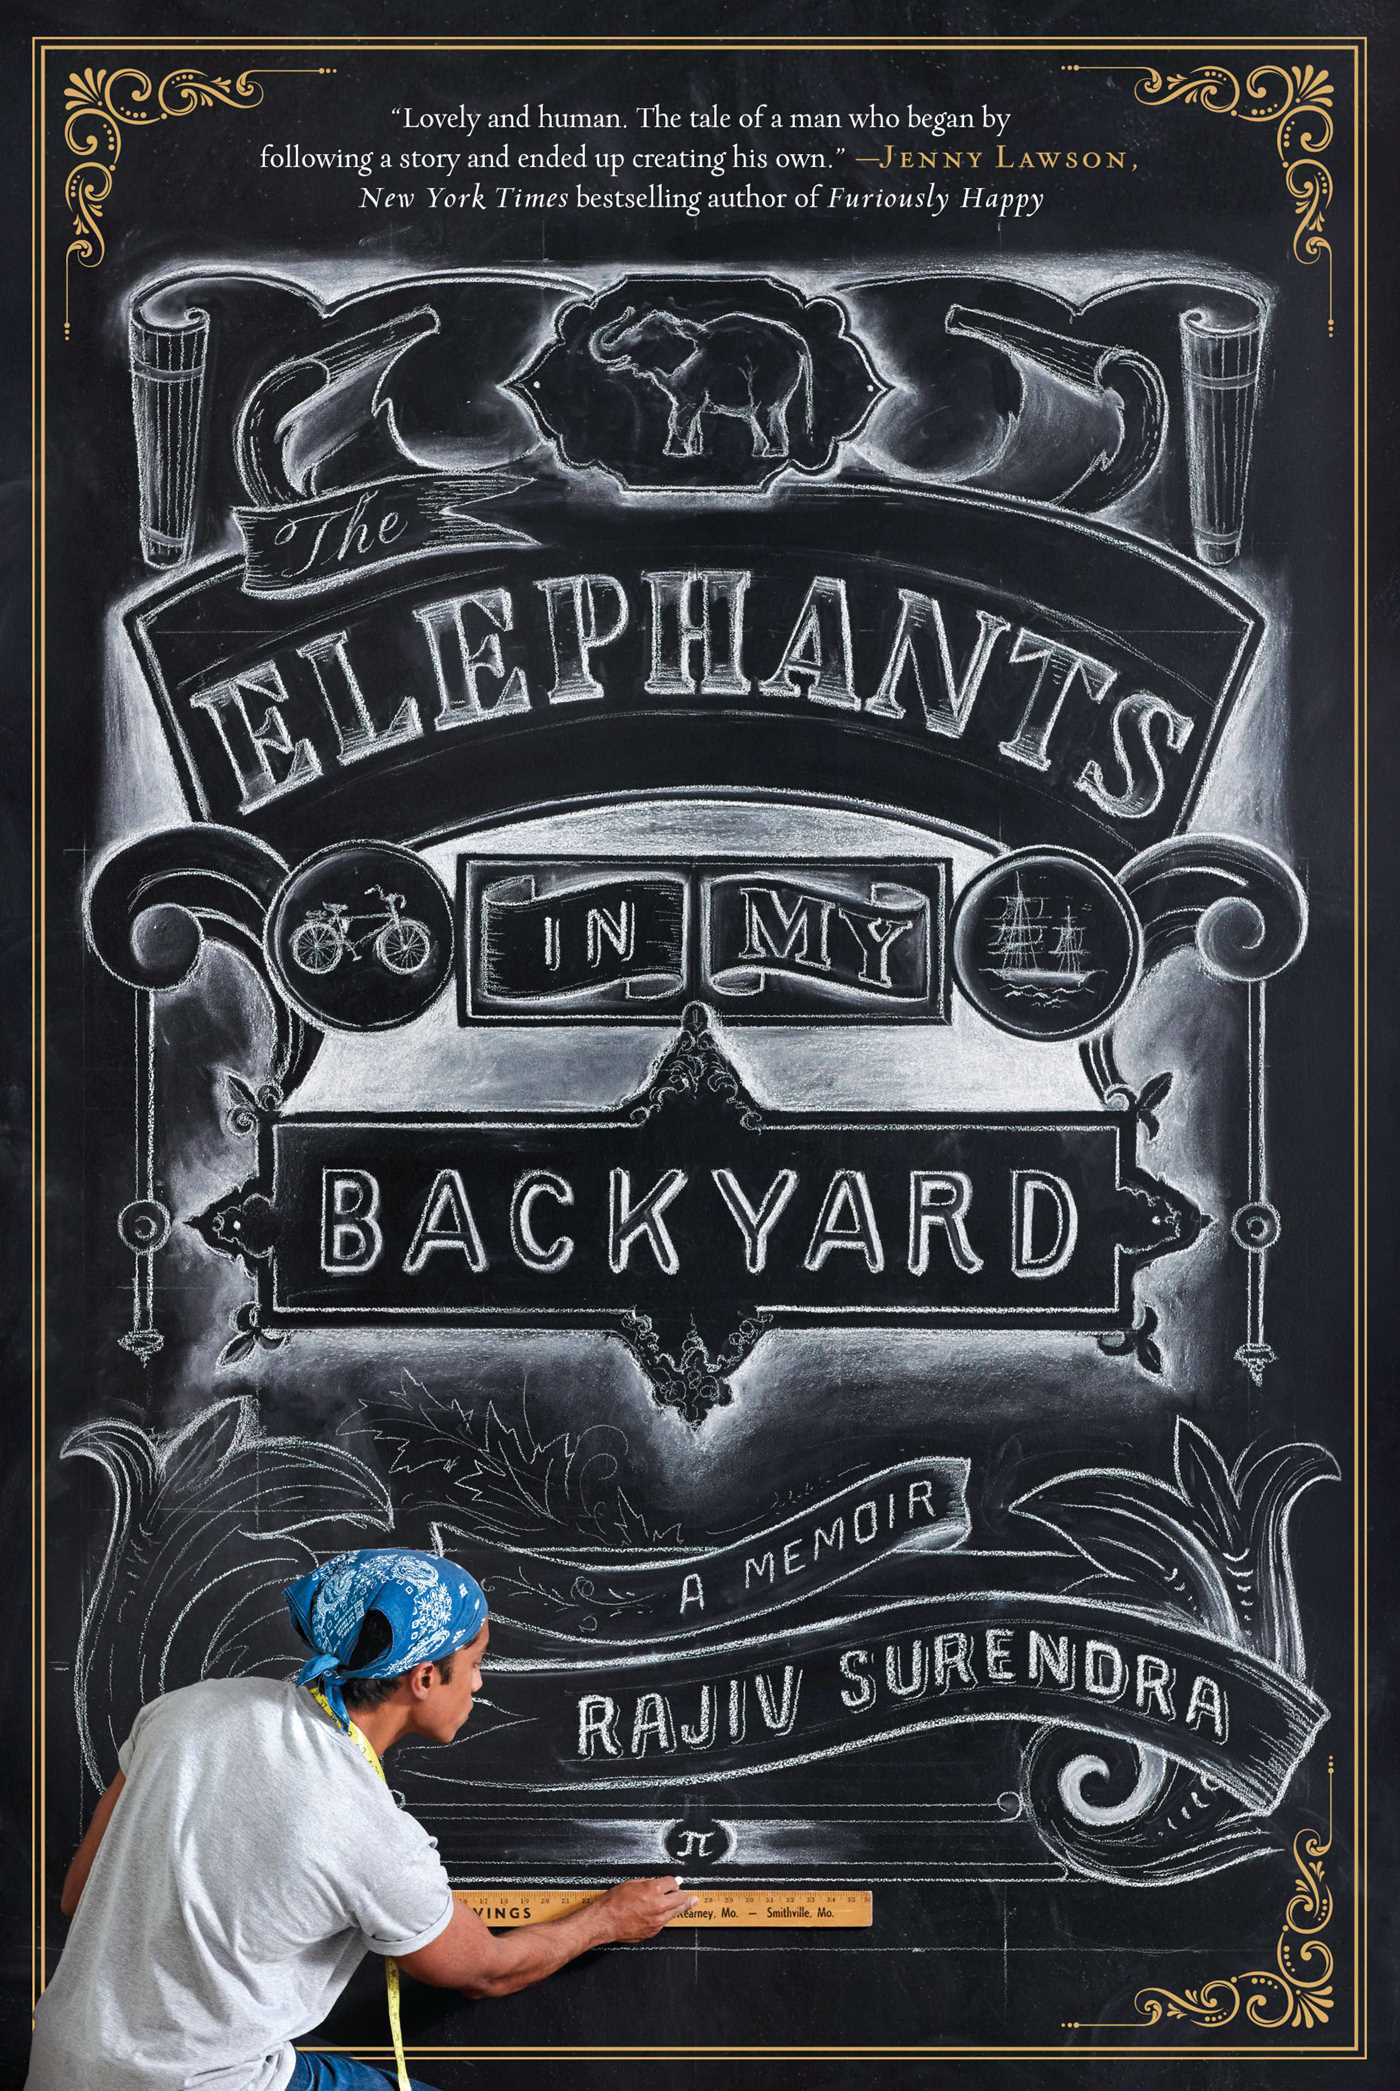 the elephants in my backyard book by rajiv surendra official